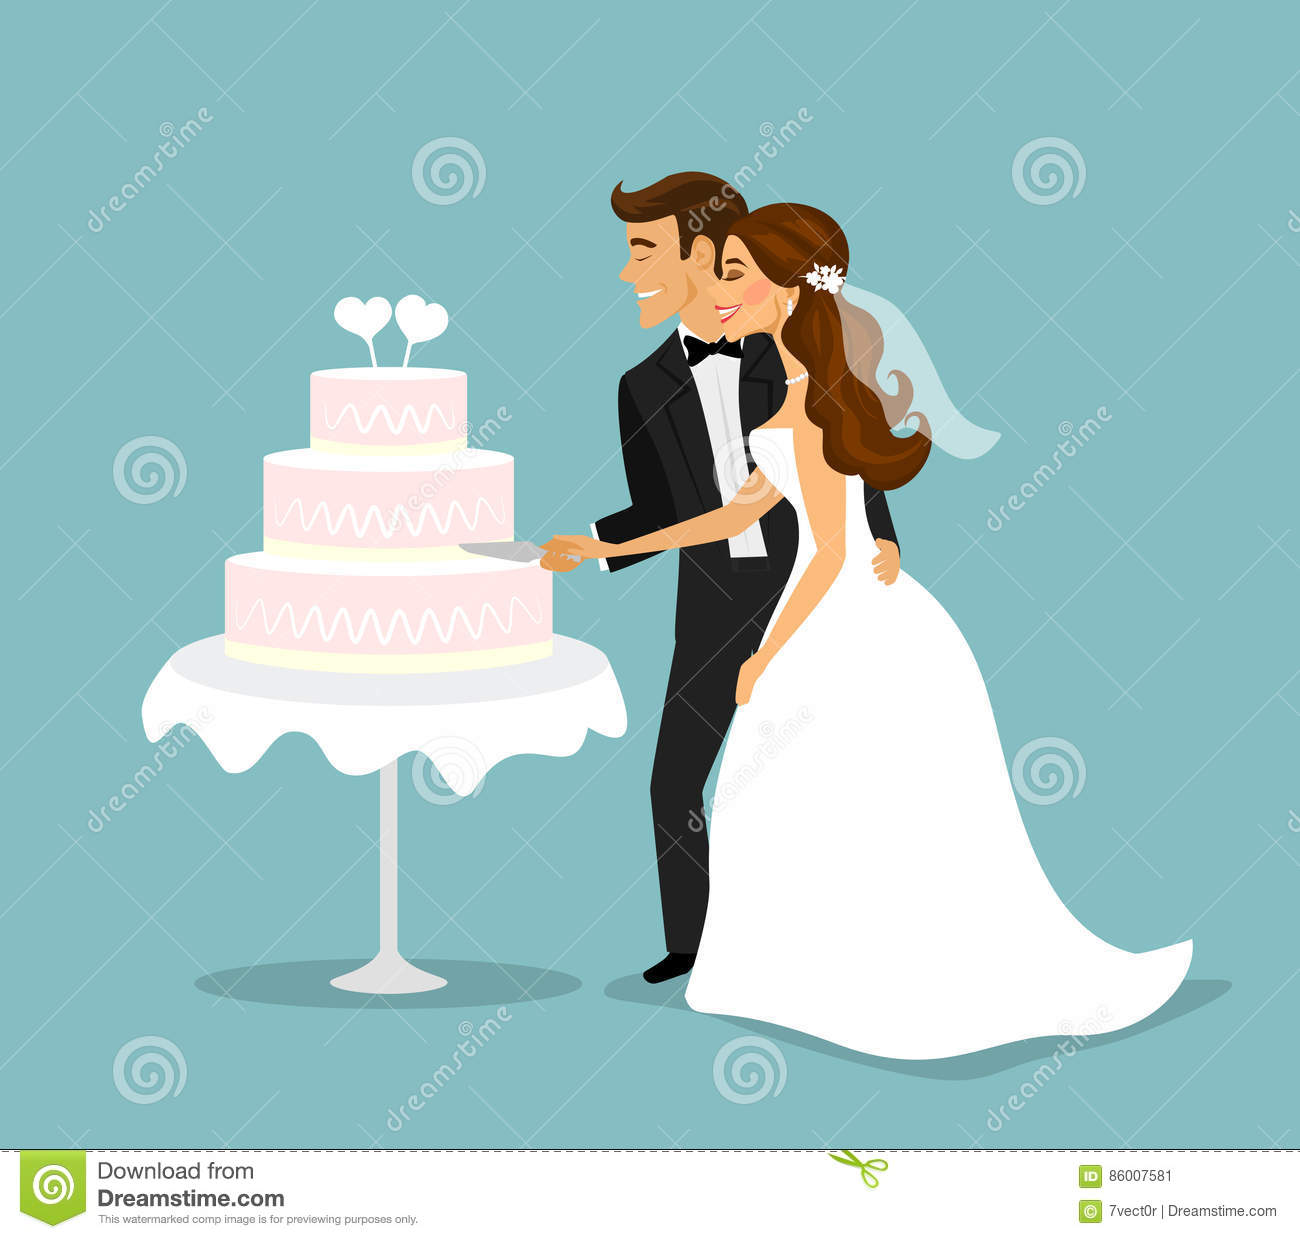 wedding cake couple wedding cutting cake royalty free stock image 22260